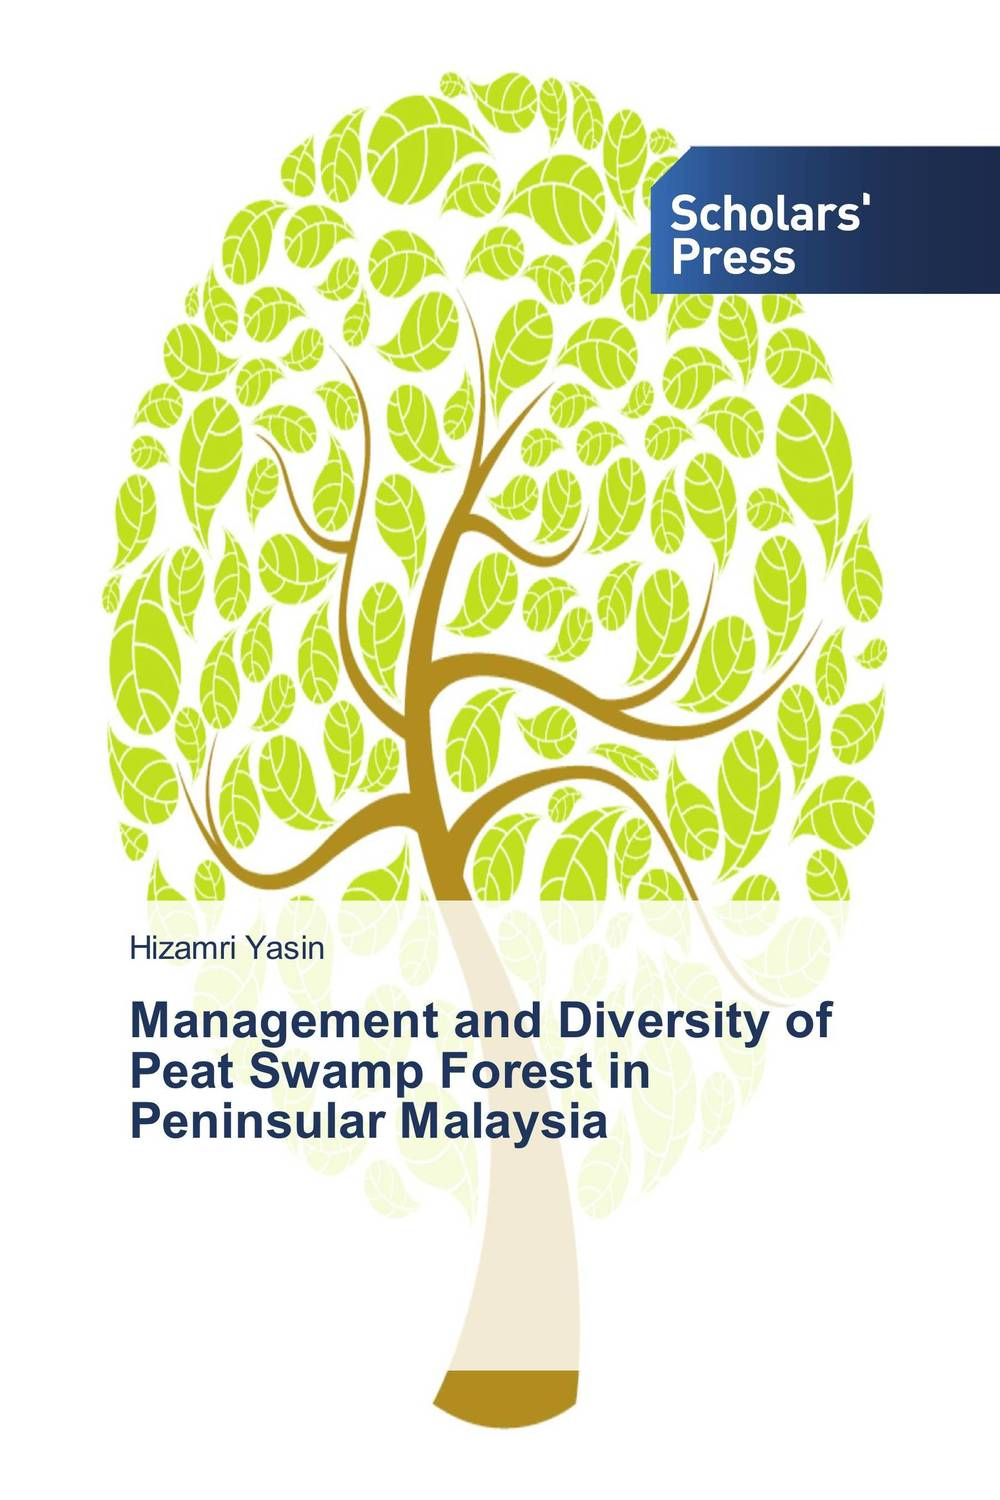 Management and Diversity of Peat Swamp Forest in Peninsular Malaysia mazura bahari and mohd afiq mohd awang anaemia among mlt s students in uitm puncak alam malaysia